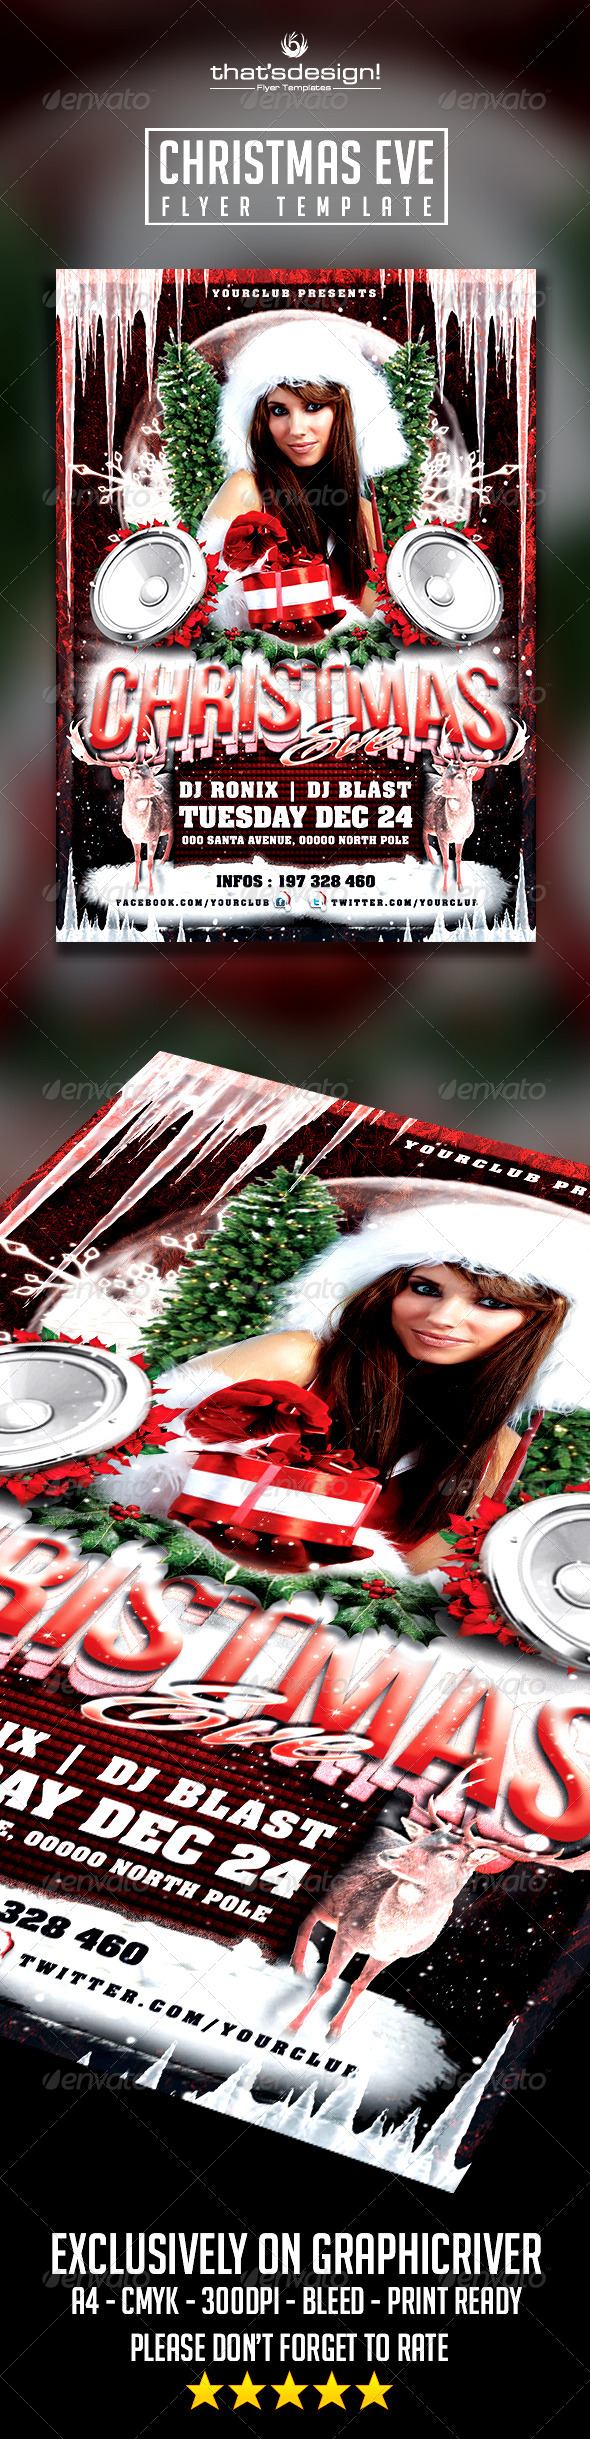 Christmas Eve Flyer Template - Holidays Events